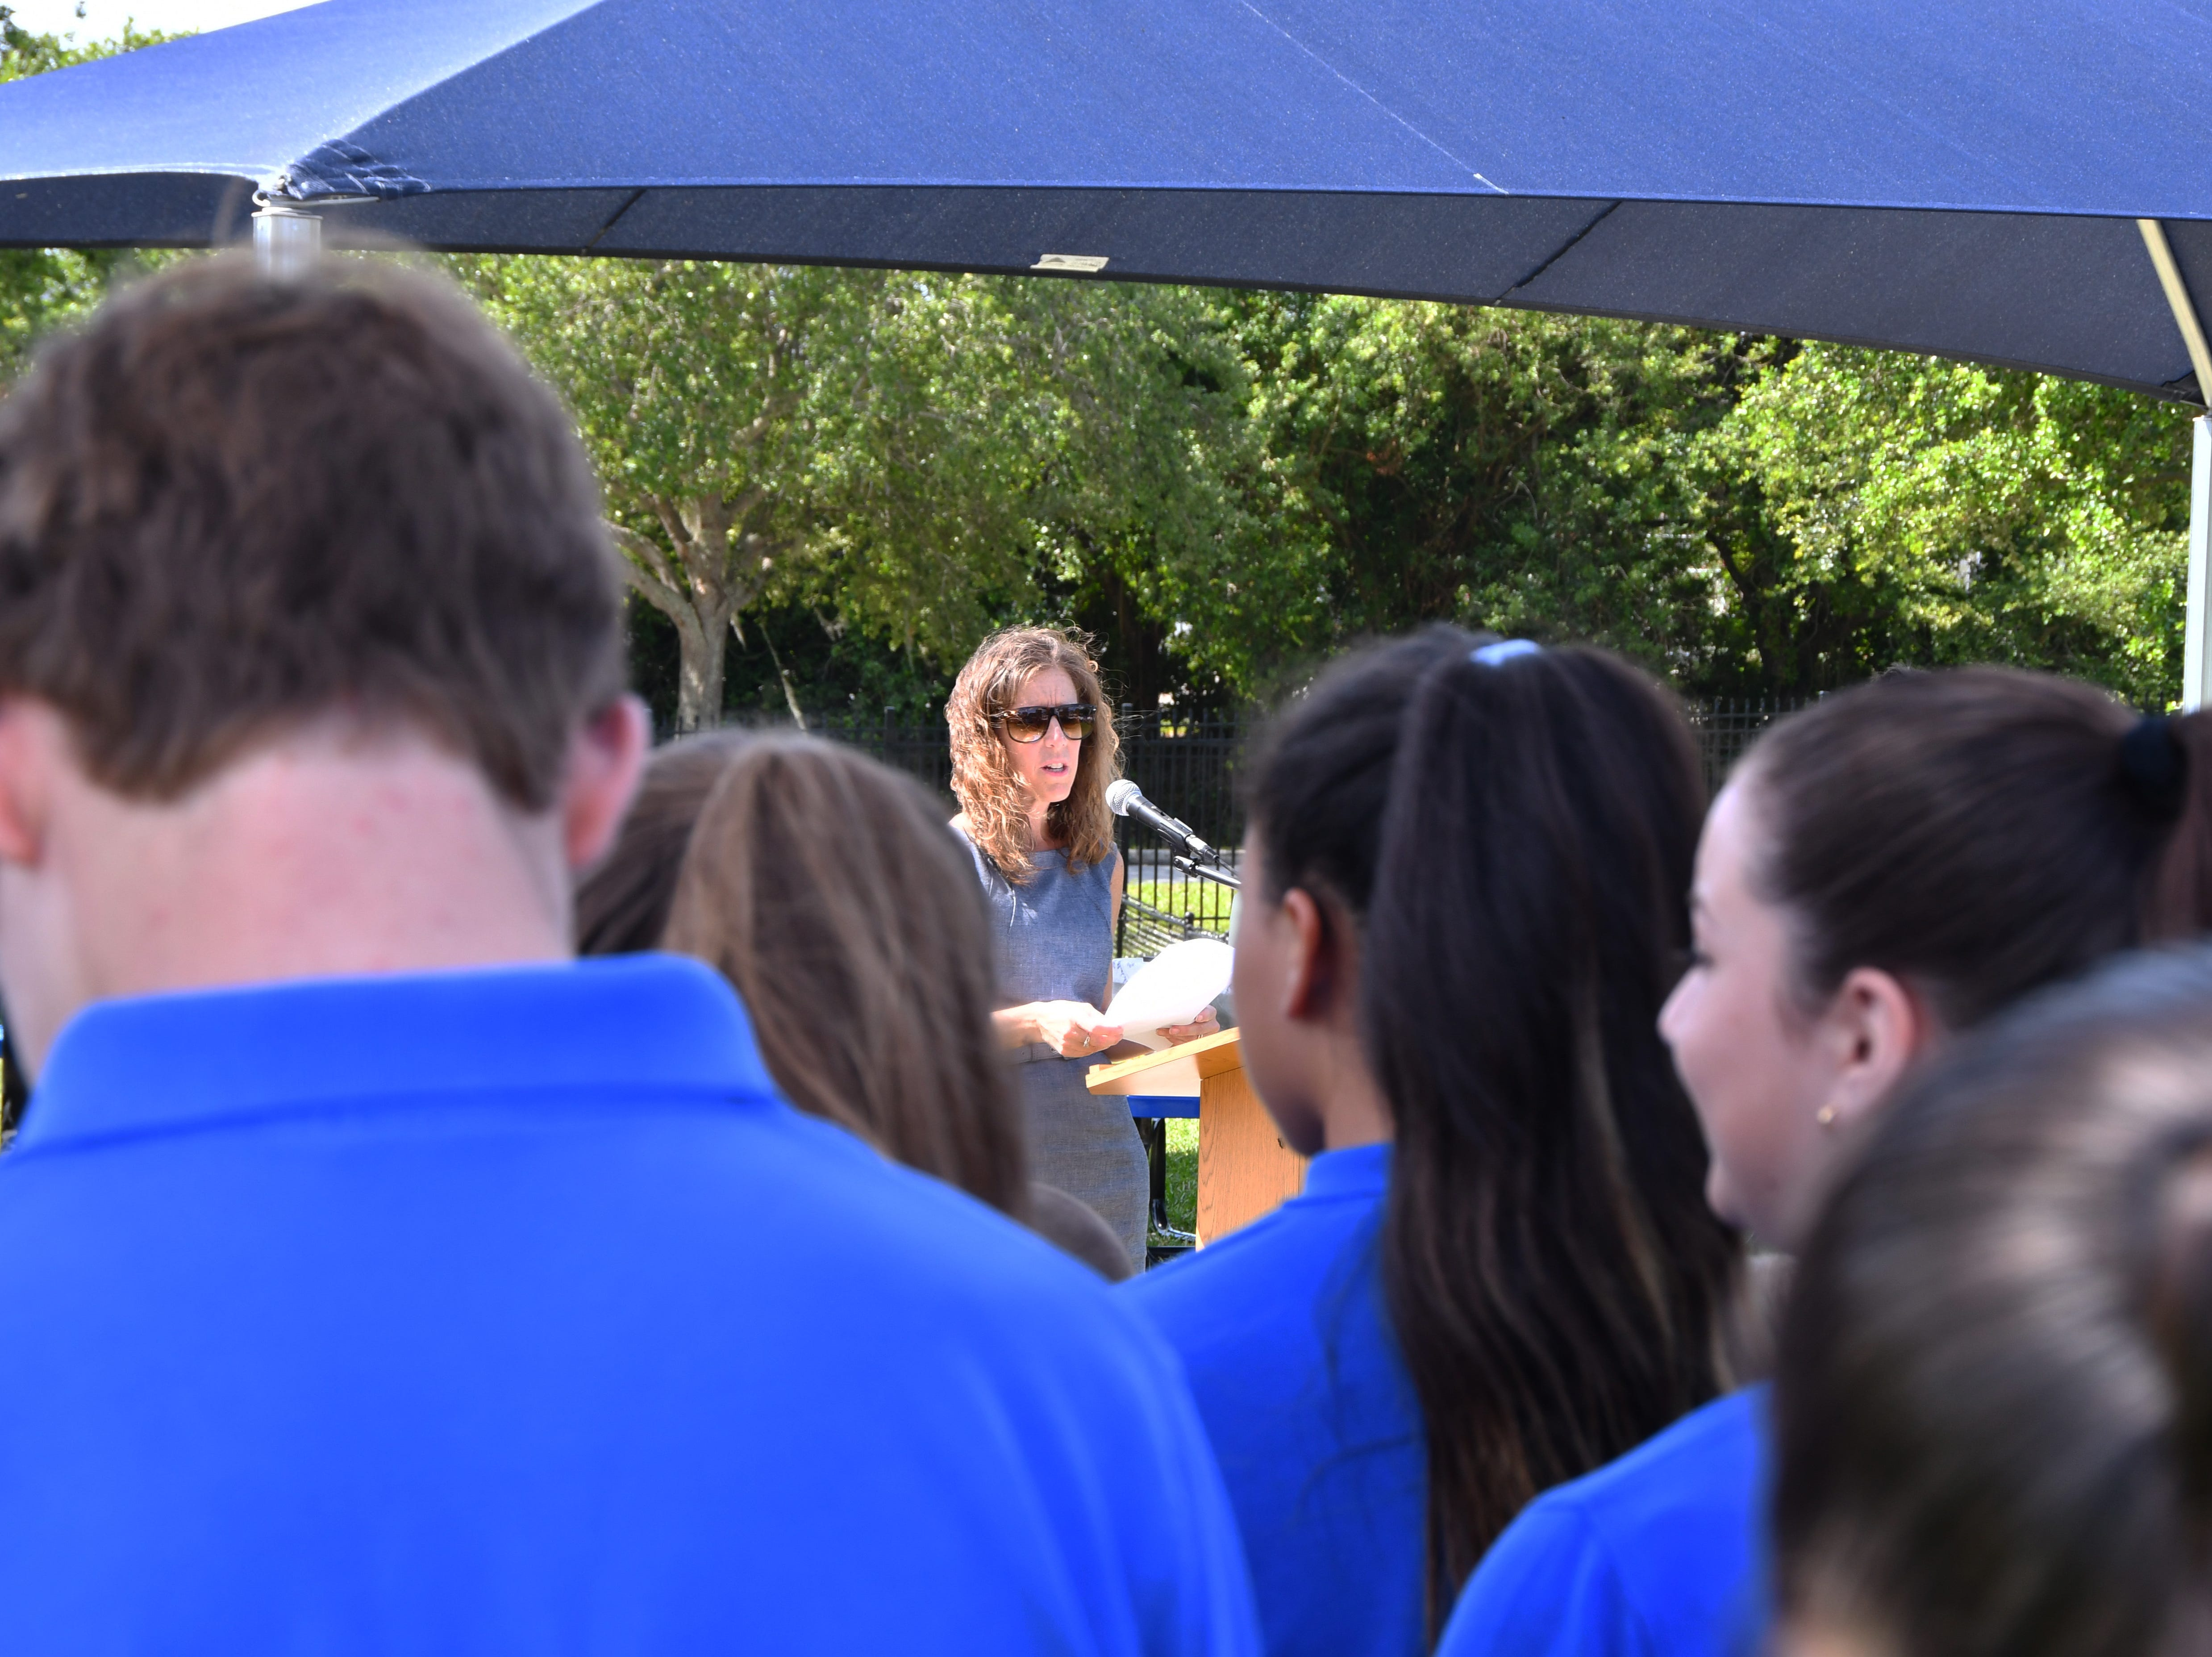 Diane Braswell was diagnosed with skin cancer, the diagnosis motivated her to begin the shade project for the students. St. Mary Catholic School in Rockledge hosted a dedication ceremony for its newly constructed shade structures Wednesday morning made possible by a grant from the American Academy of Dermatology's Adopt-A-Shade program. Board-certified dermatologist, Francille MacFarland, MD, FAAD, provided a generous donation to the AAD, which completed the funding necessary to build the structure over the school's primary playground and picnic area. The shade will help protect more than 250 children and teachers daily from the sun's harmful ultraviolet rays. Other parishioners, families, doctors and school fund raisers helped cover the cost.